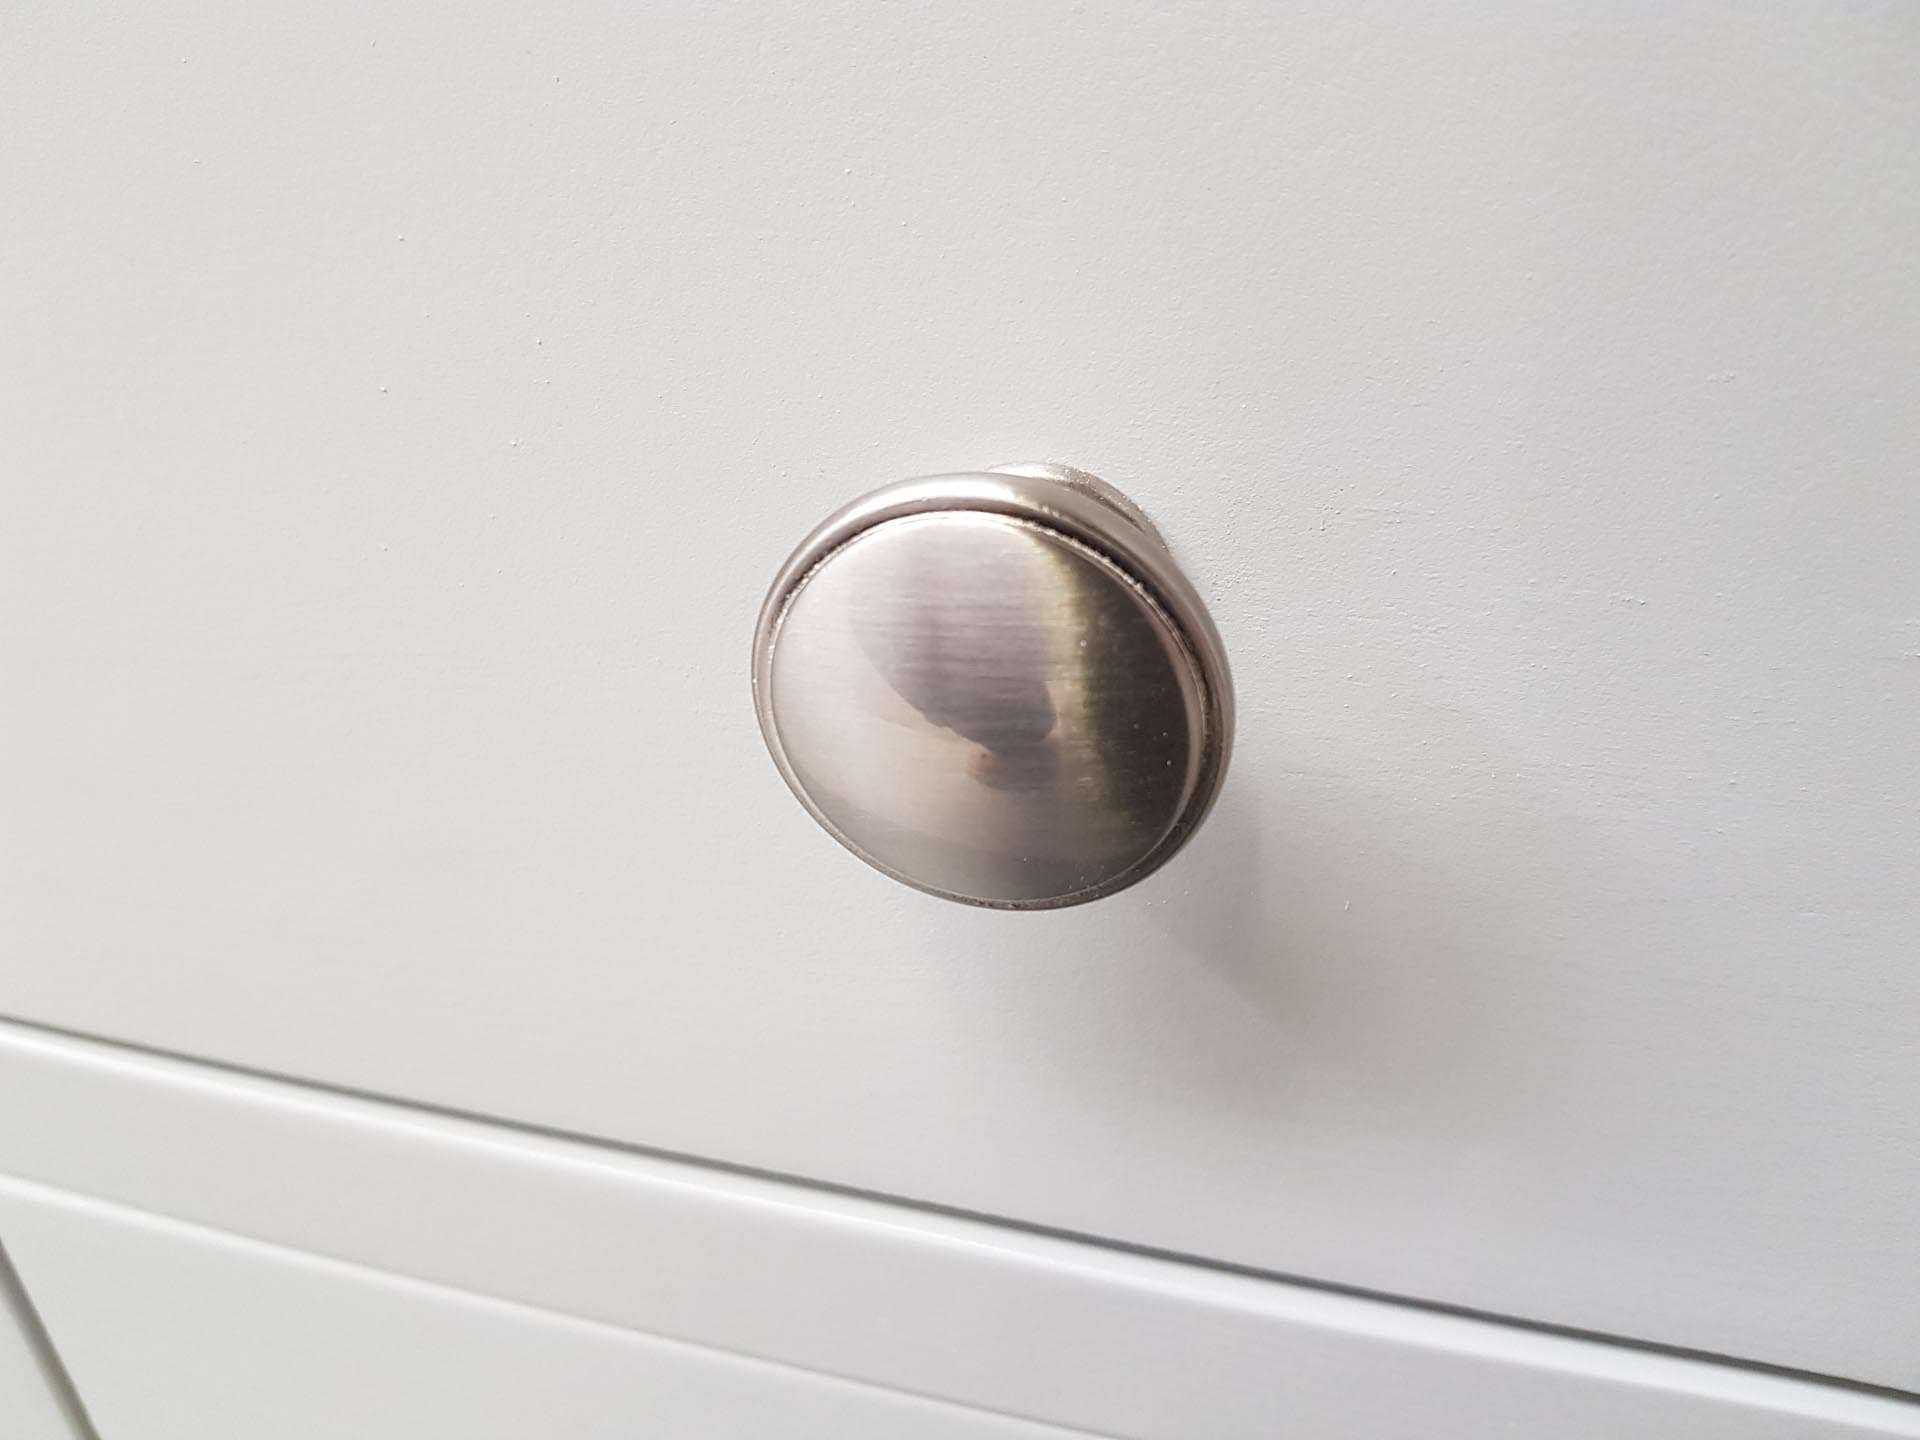 Brushed Steel Knob